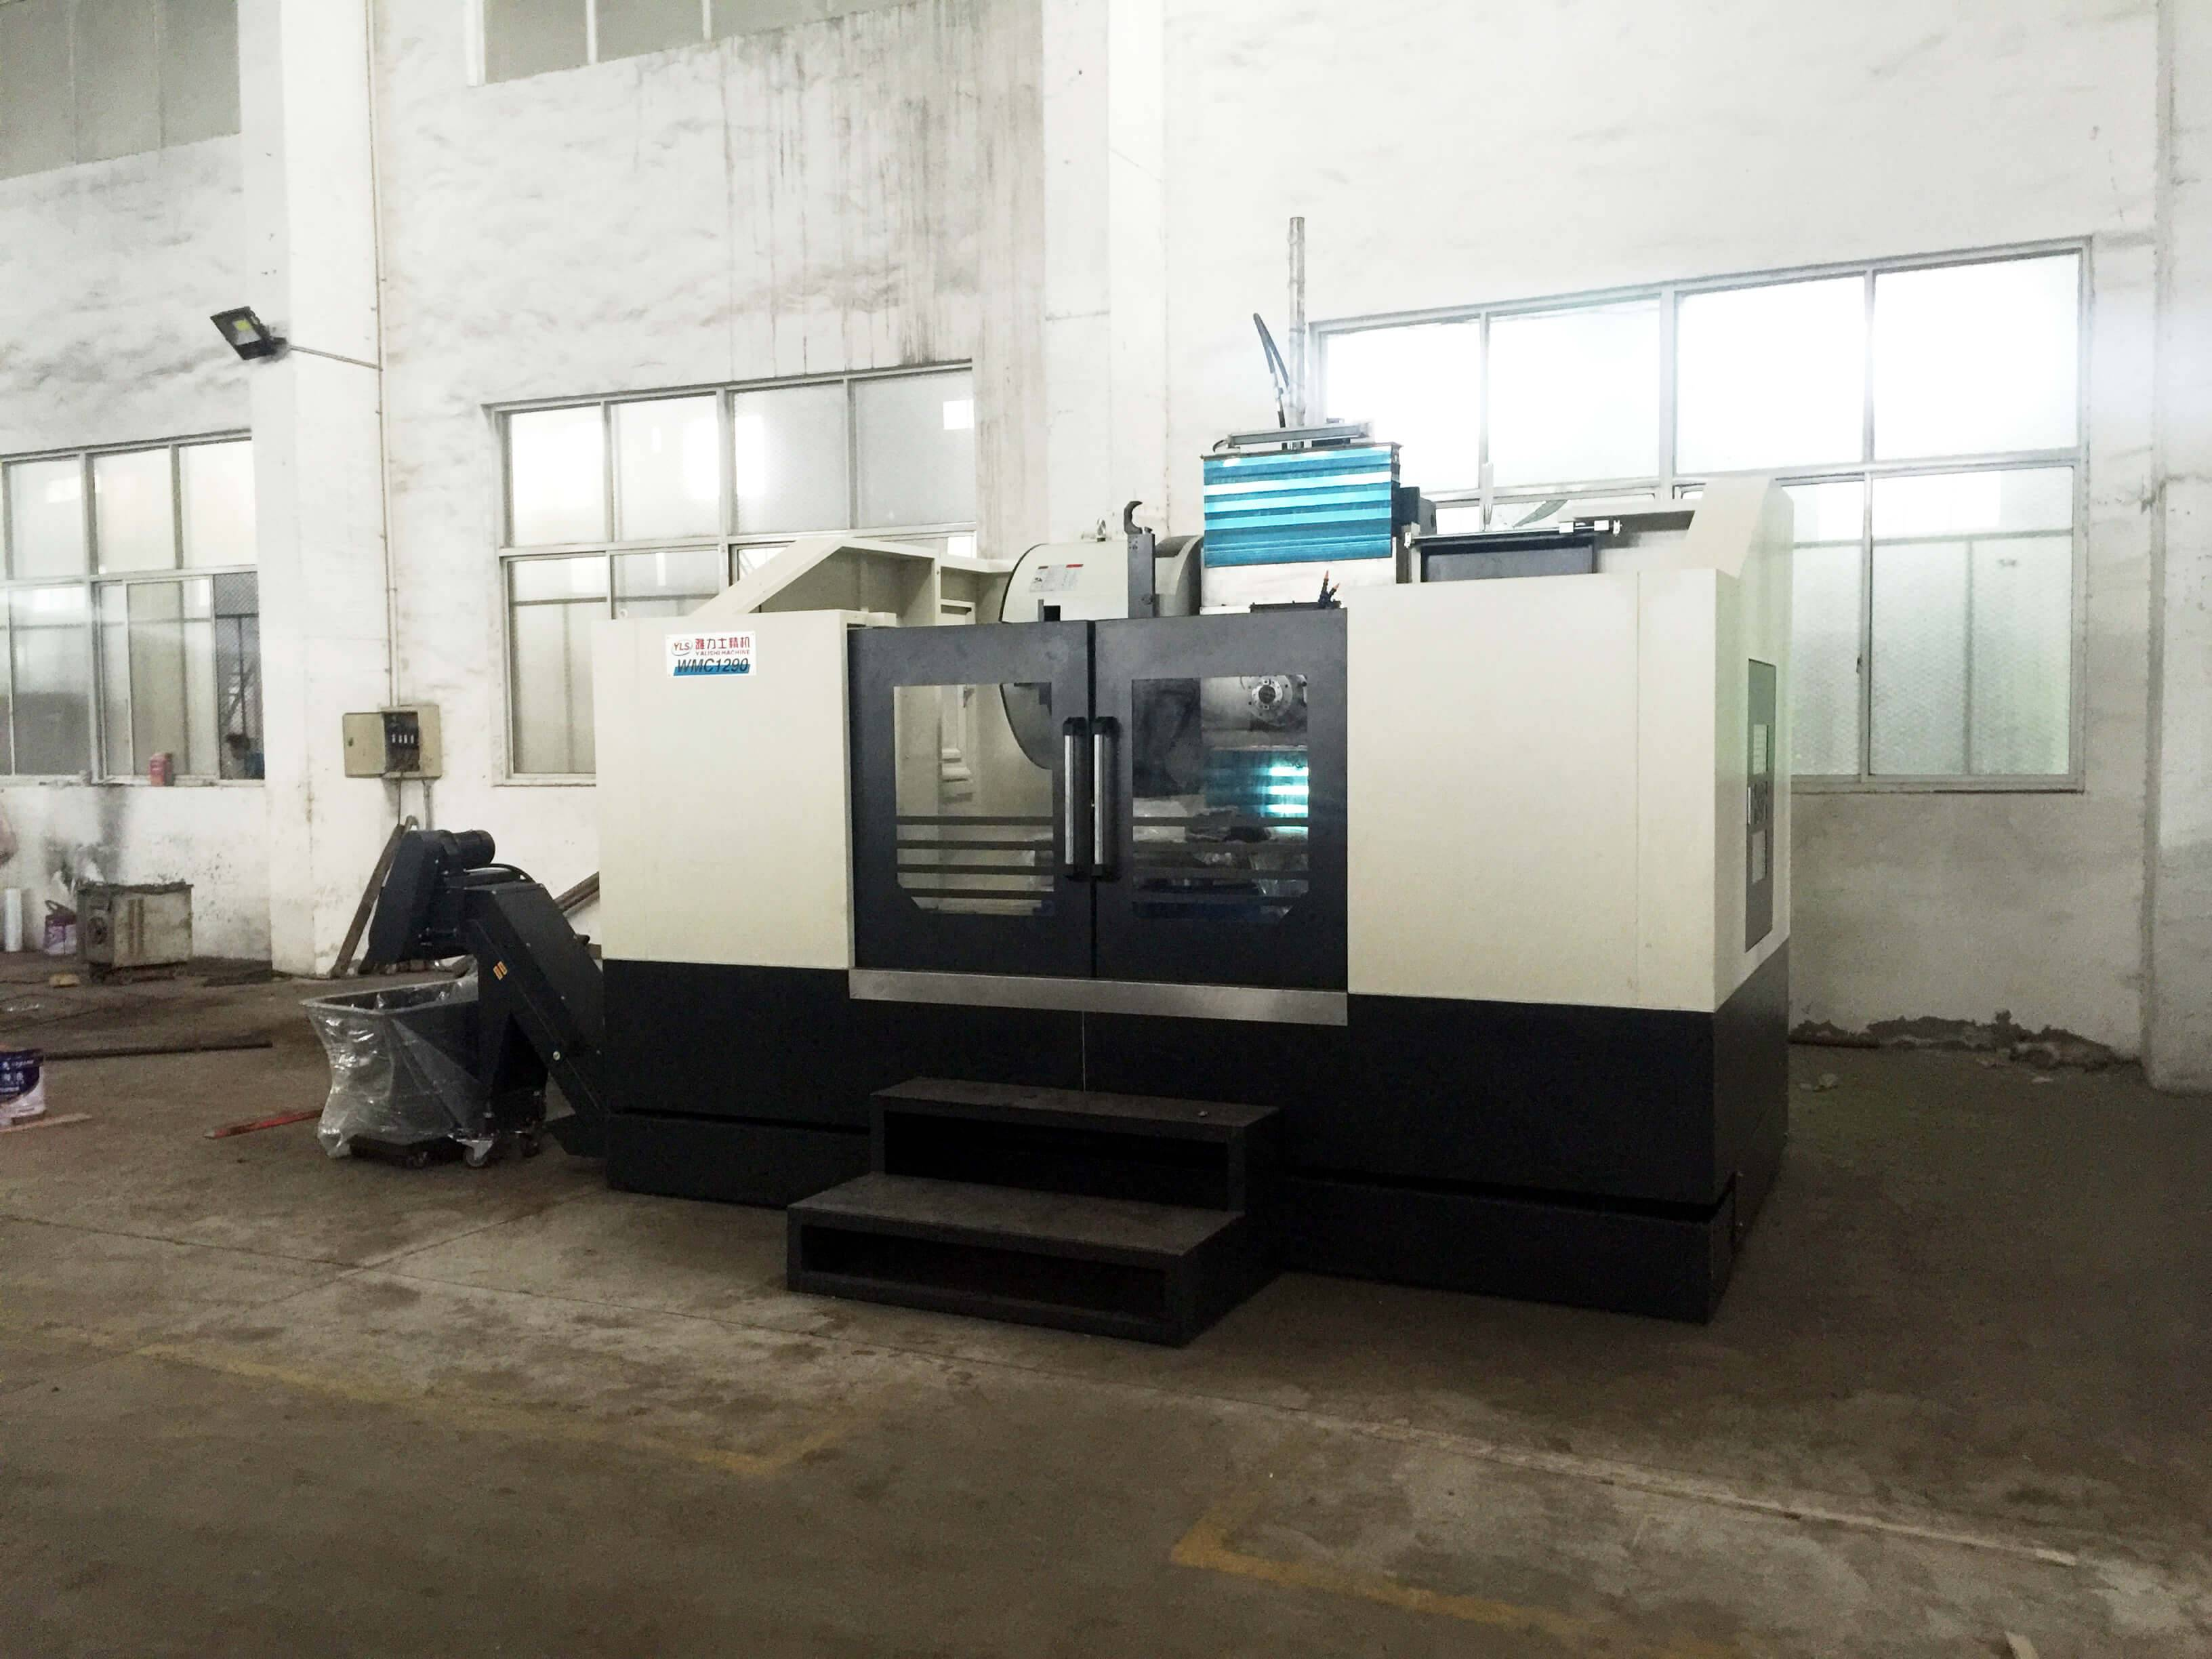 Add one new CNC machining center in our new shop